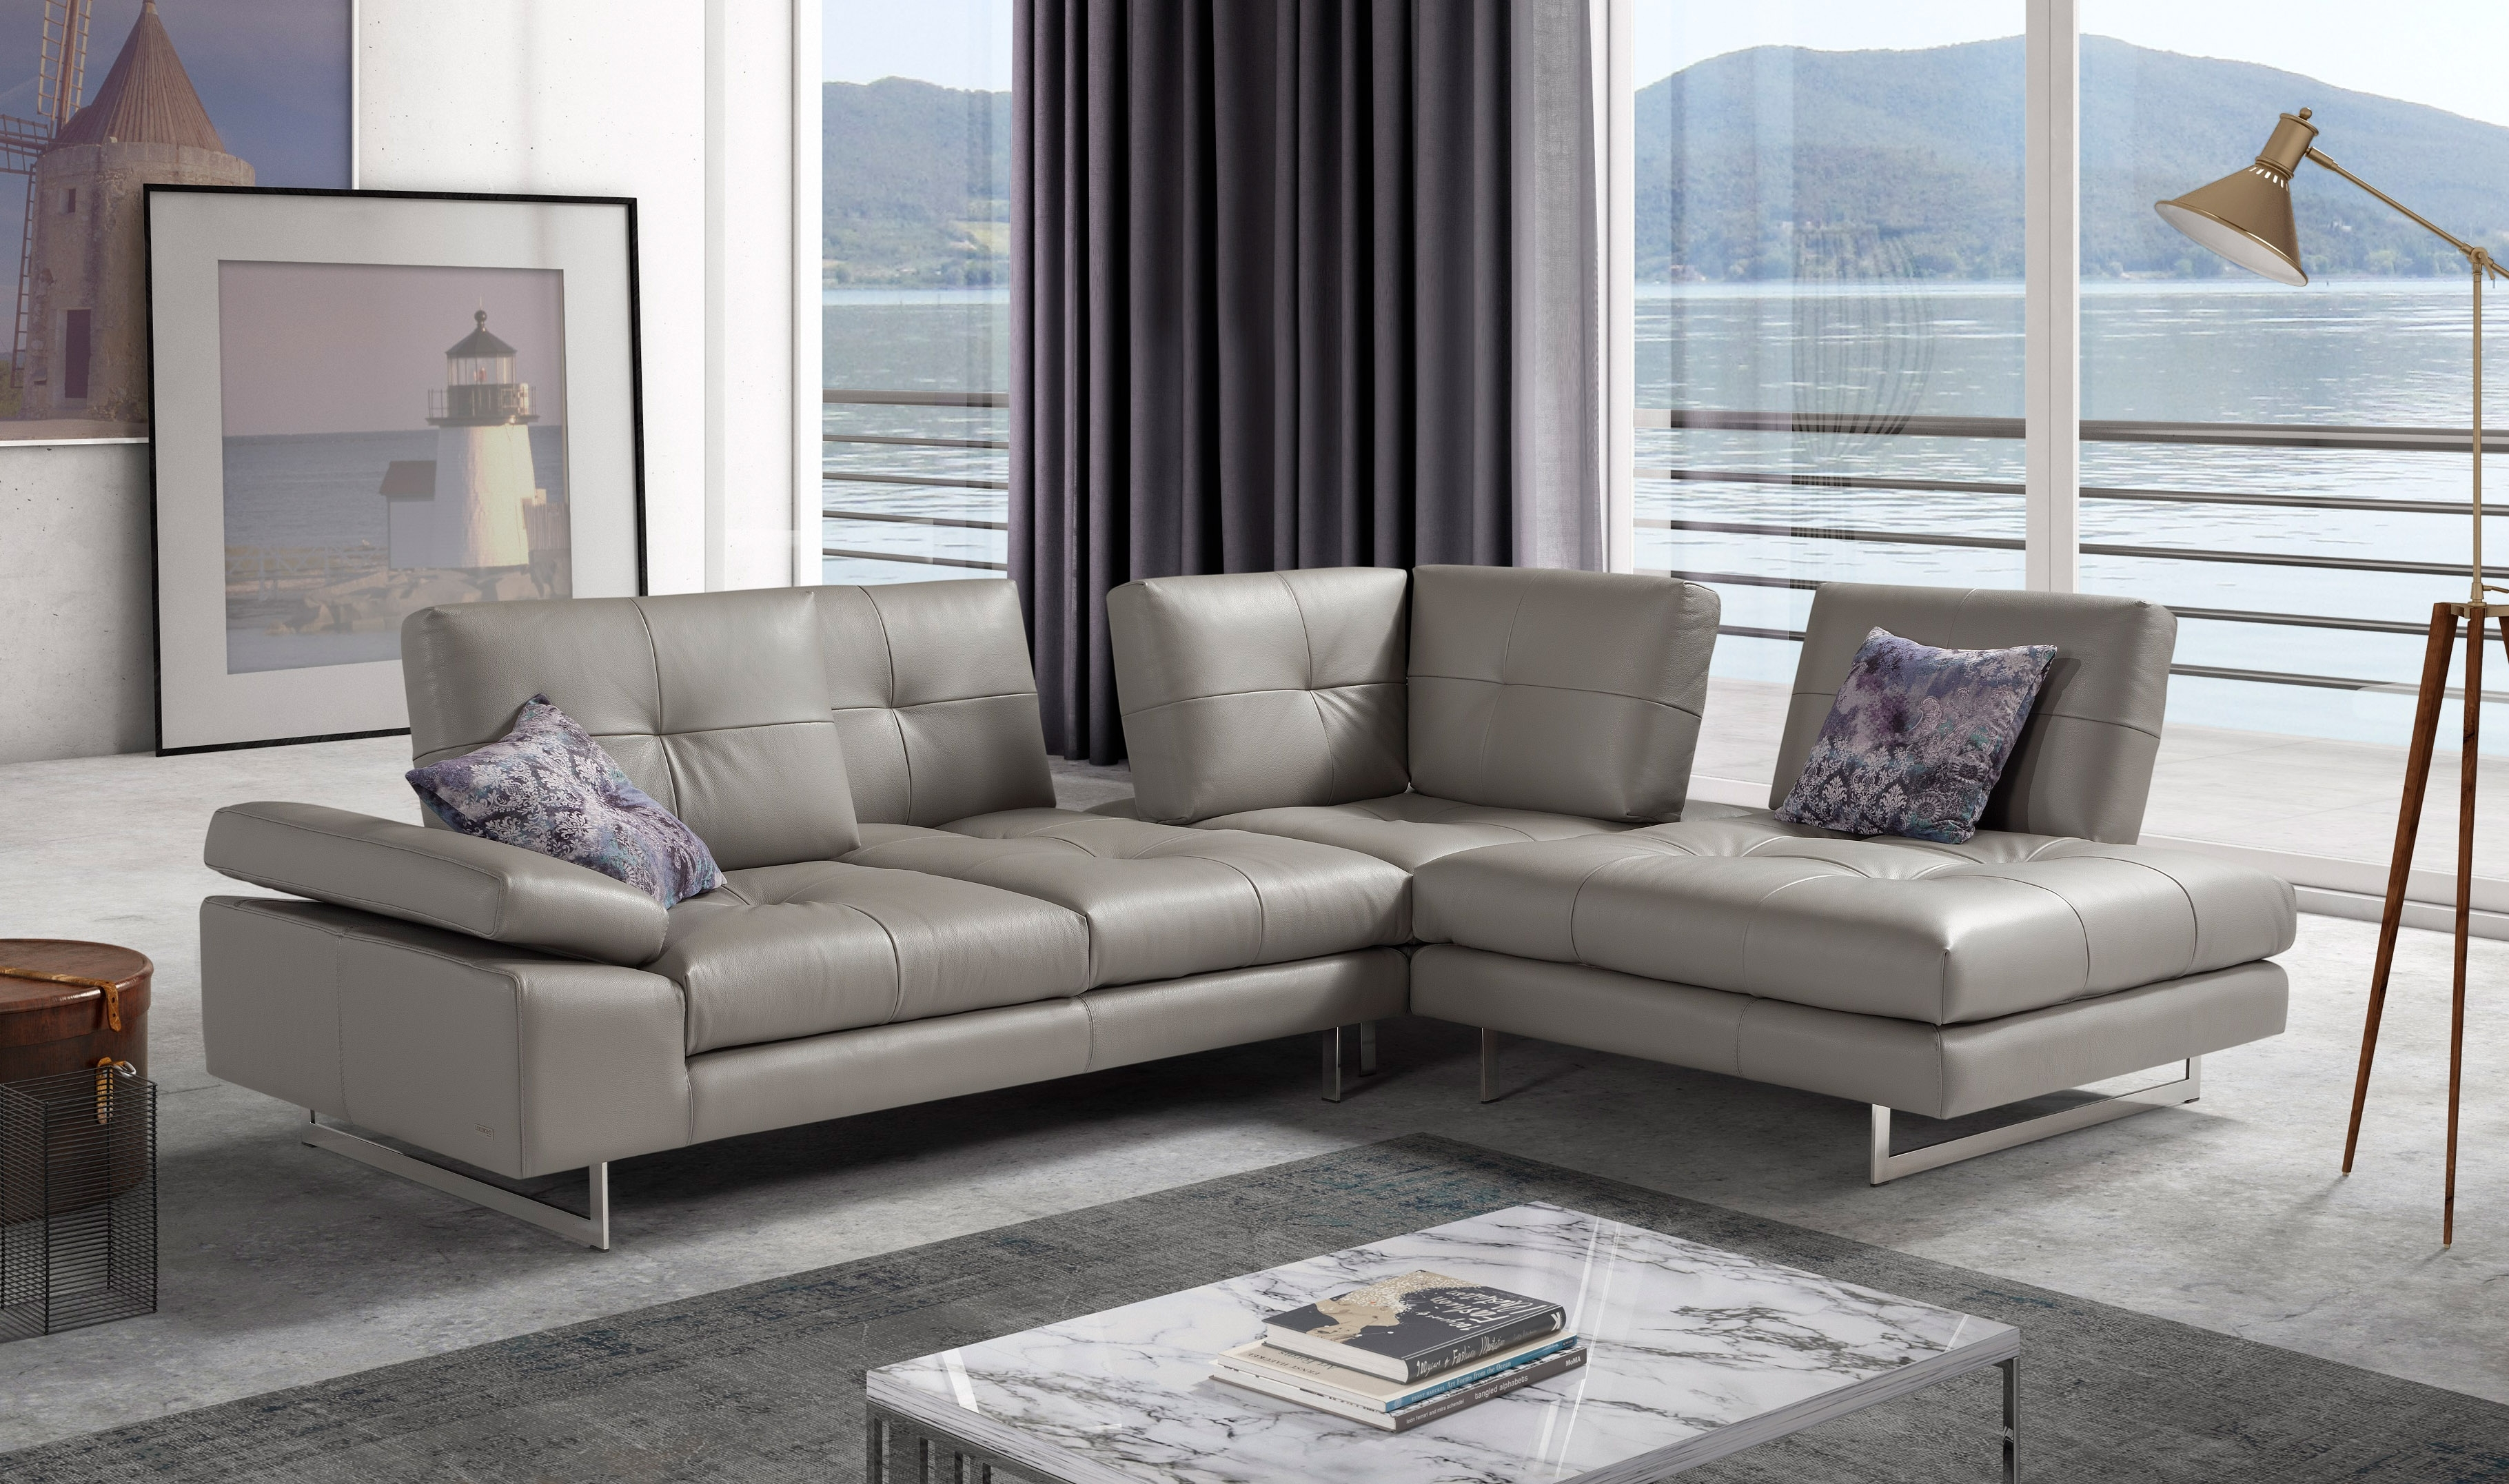 Advanced Adjustable Tufted Leather Sectional With Chaise Aurora Within Aurora 2 Piece Sectionals (View 23 of 25)